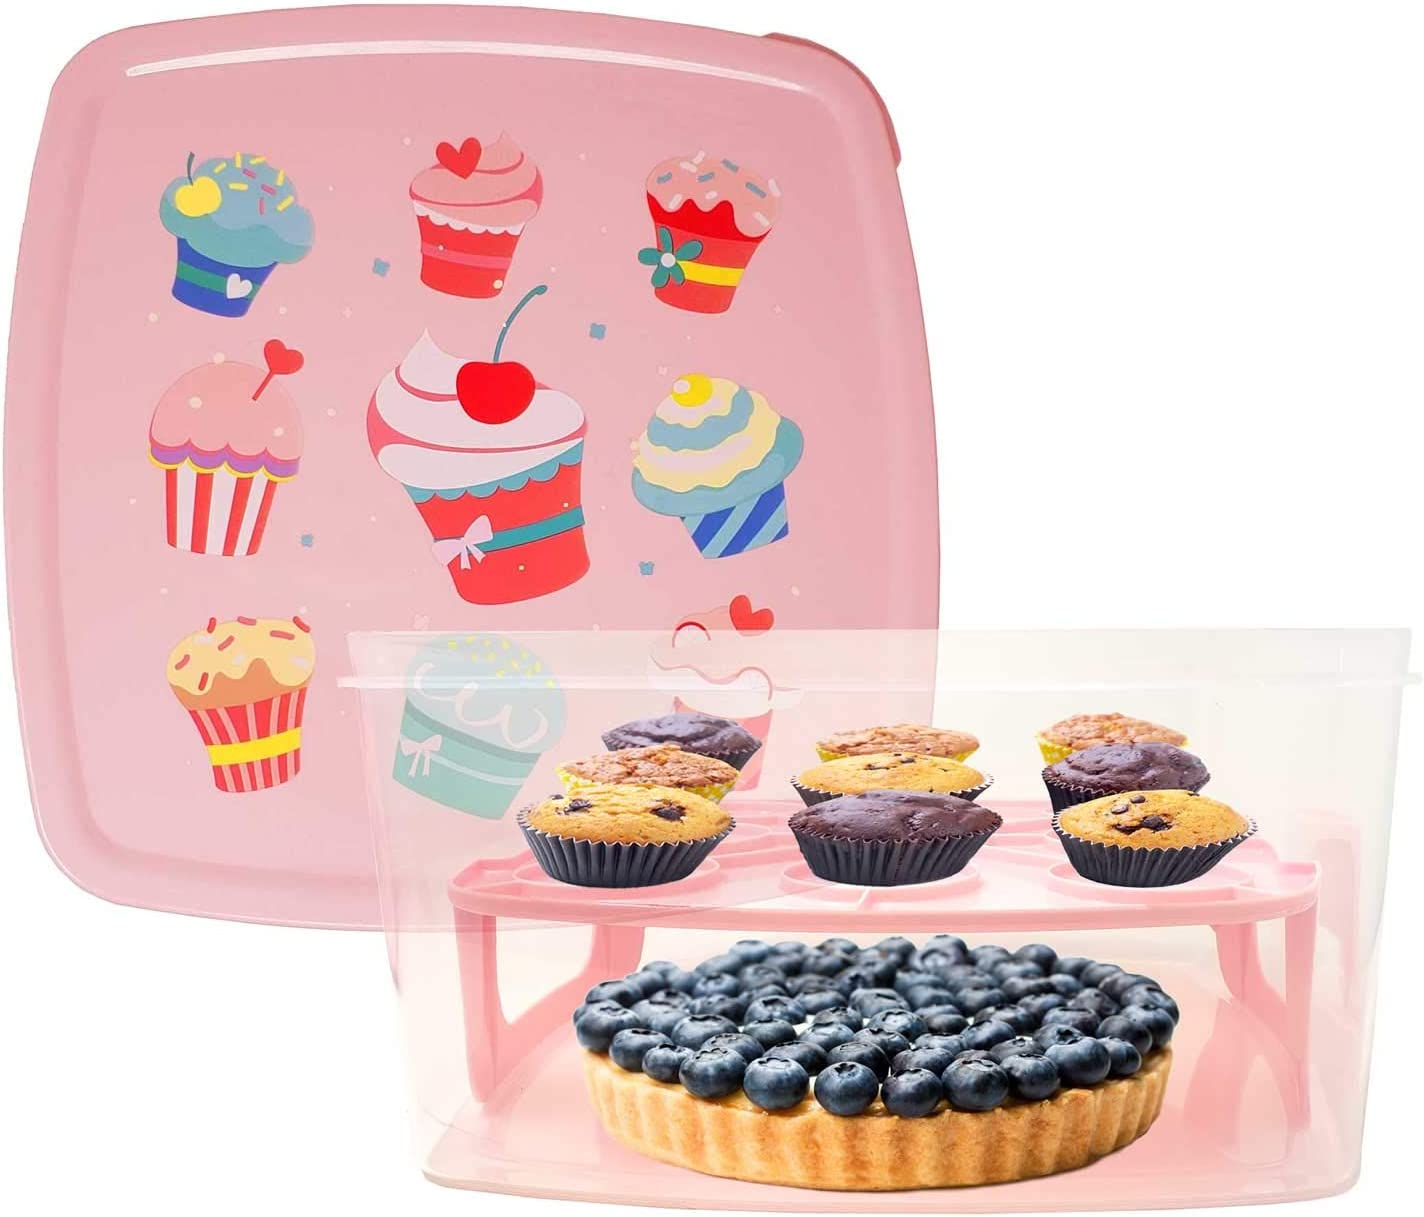 Cake & Cupcake Carrier/Storage Container Holds up to 8 inch 2-layer cake, Pink & Clear - Transports Cakes, Pies, Muffins or Other Desserts - Freezer & Dishwasher Safe